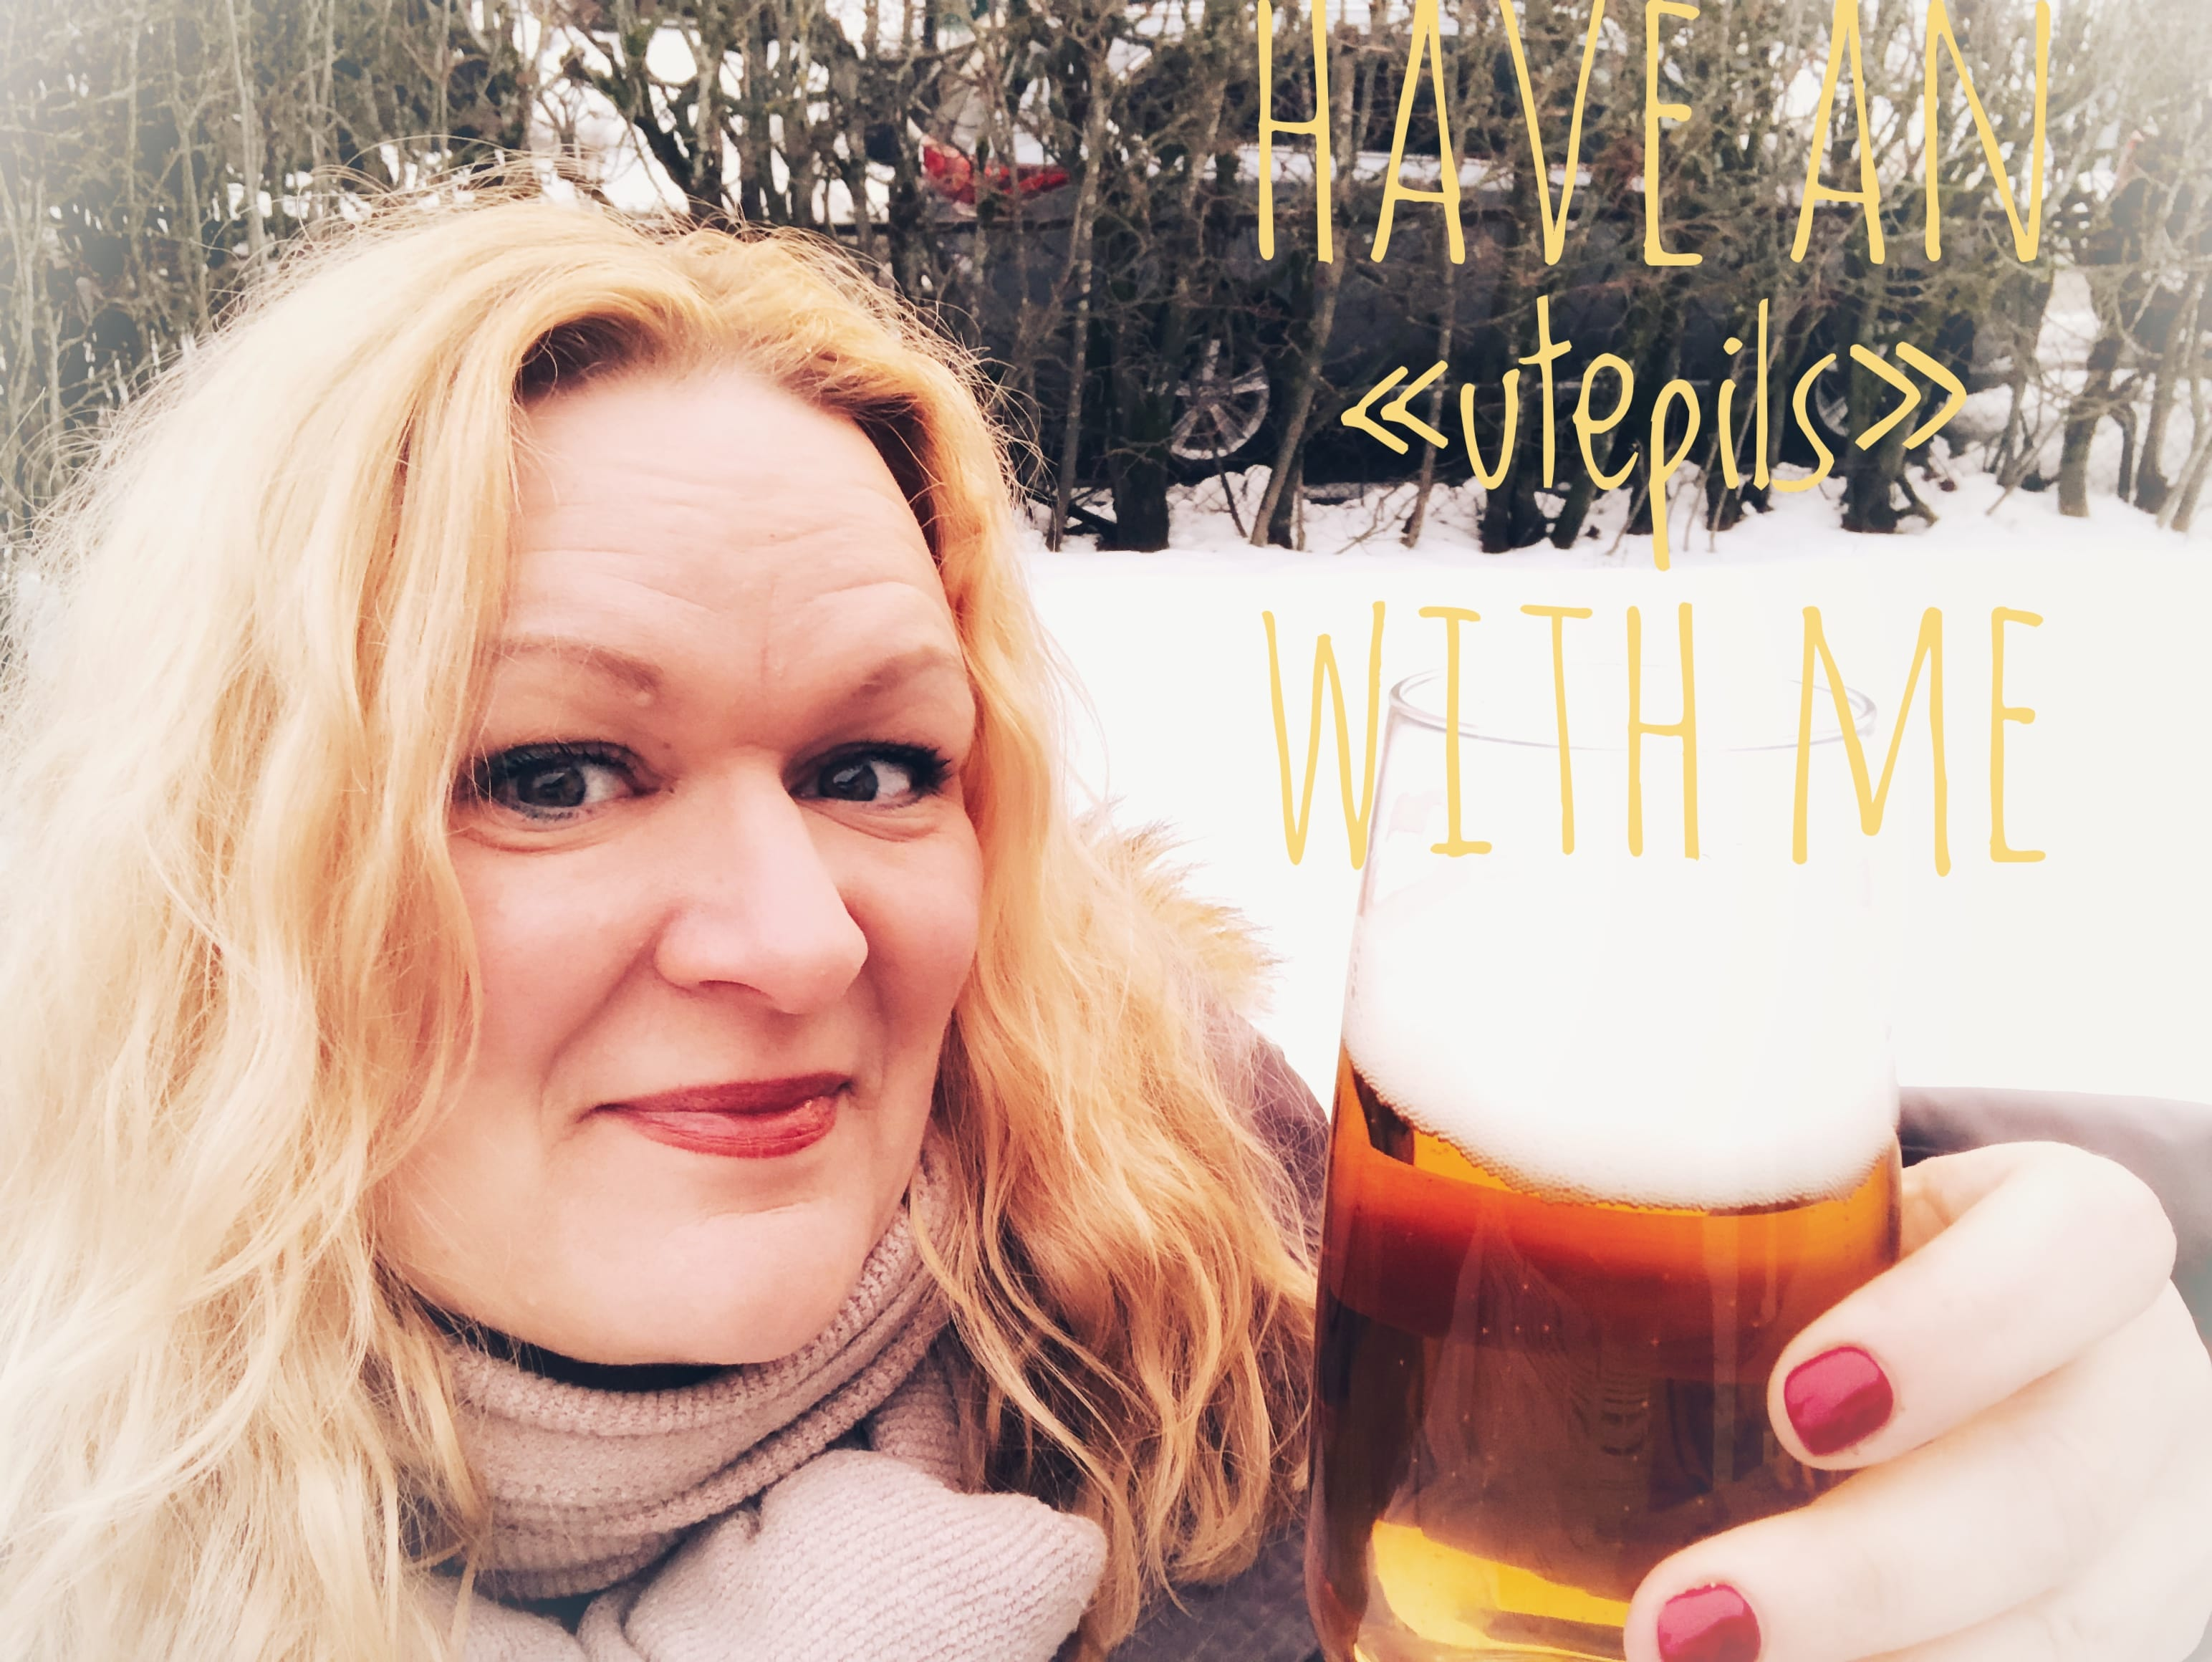 """Have an """"utepils"""" with me"""